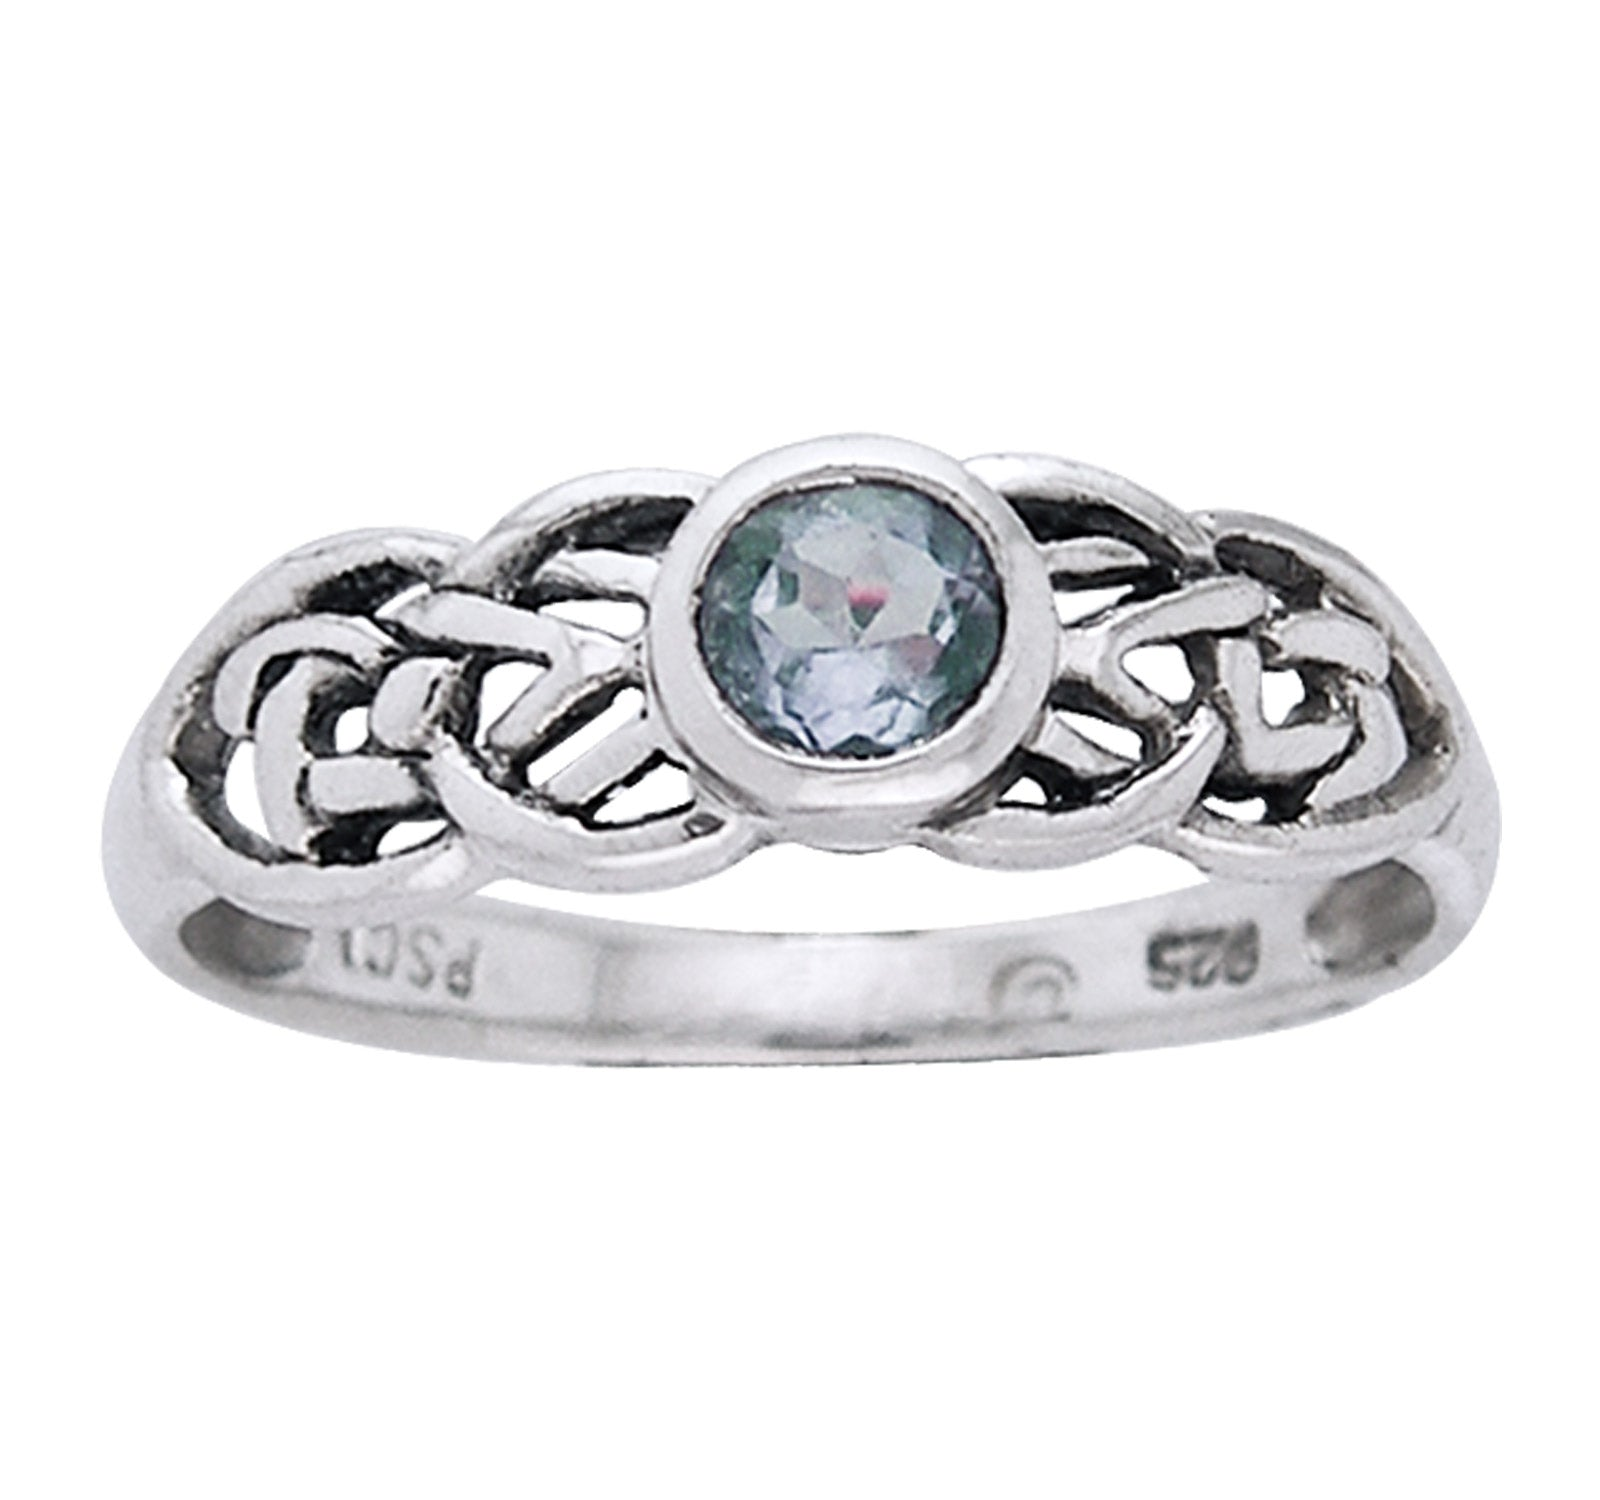 Petite Celtic Knot Birthstone Ring Sterling Silver Genuine Blue Topaz For December - Silver Insanity